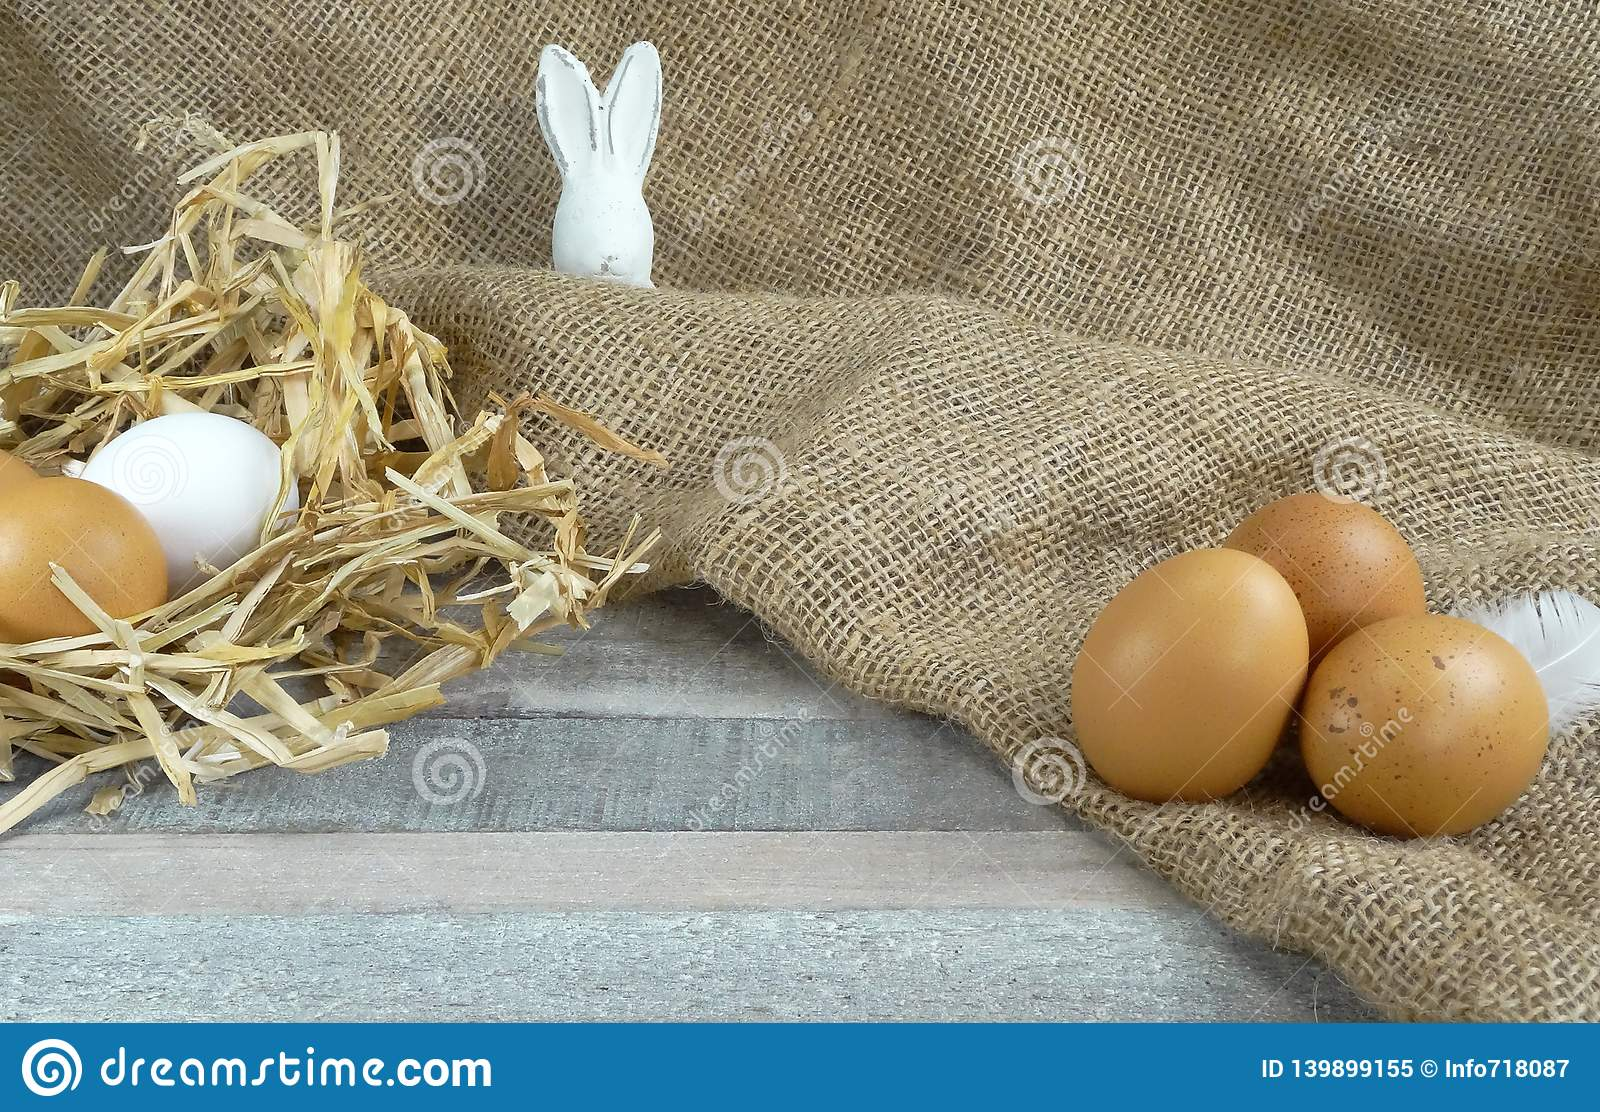 Chicken eggs in straw nest witheaster bunny at burlap over wooden background